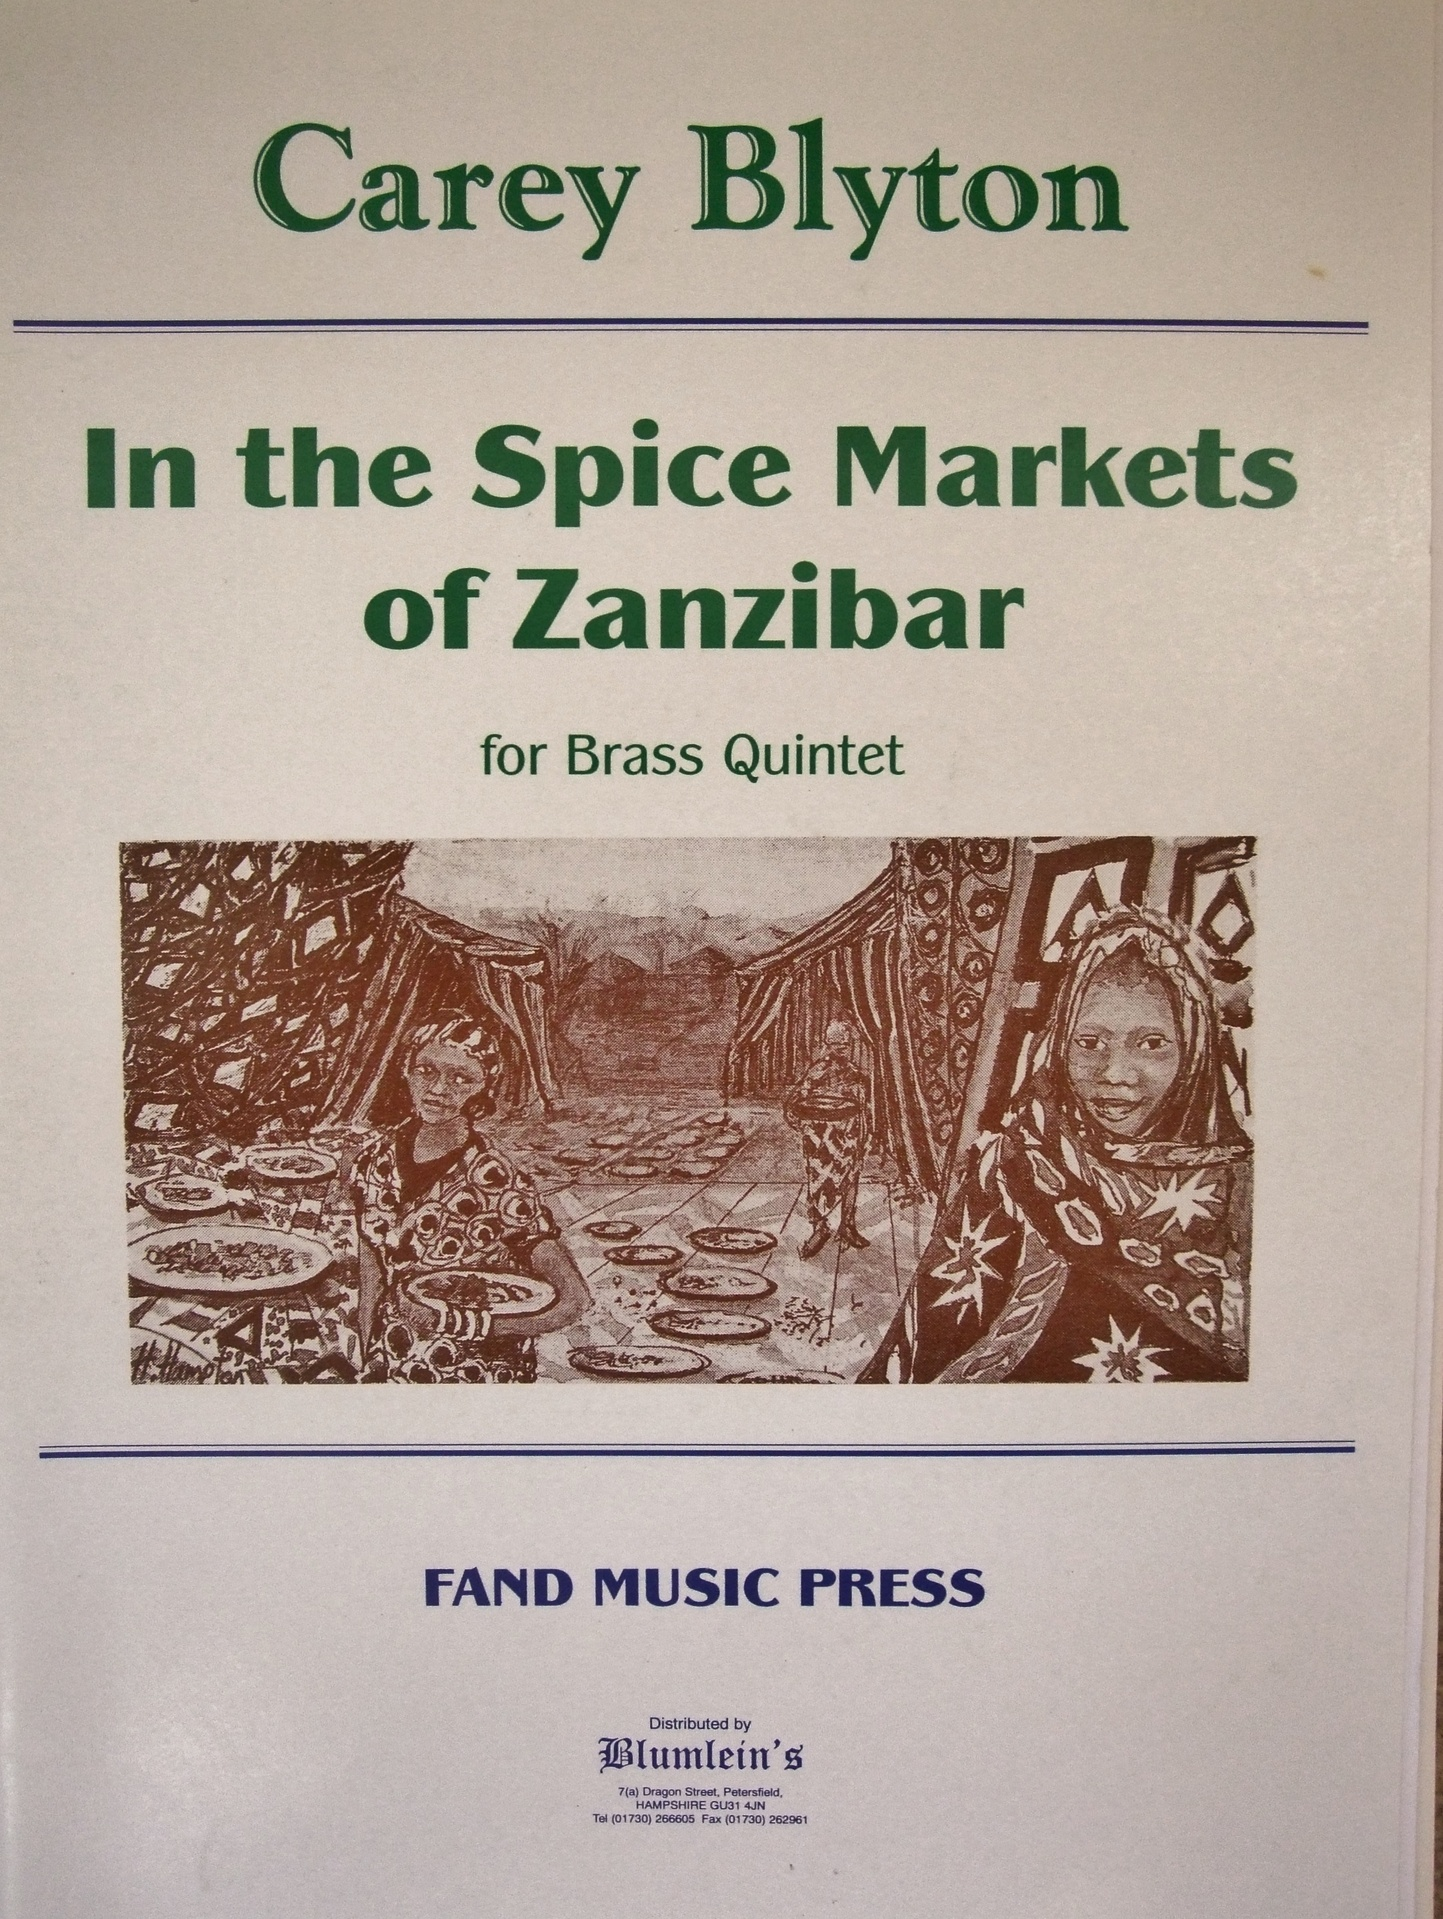 In the Spice Markets of Zanzibar.